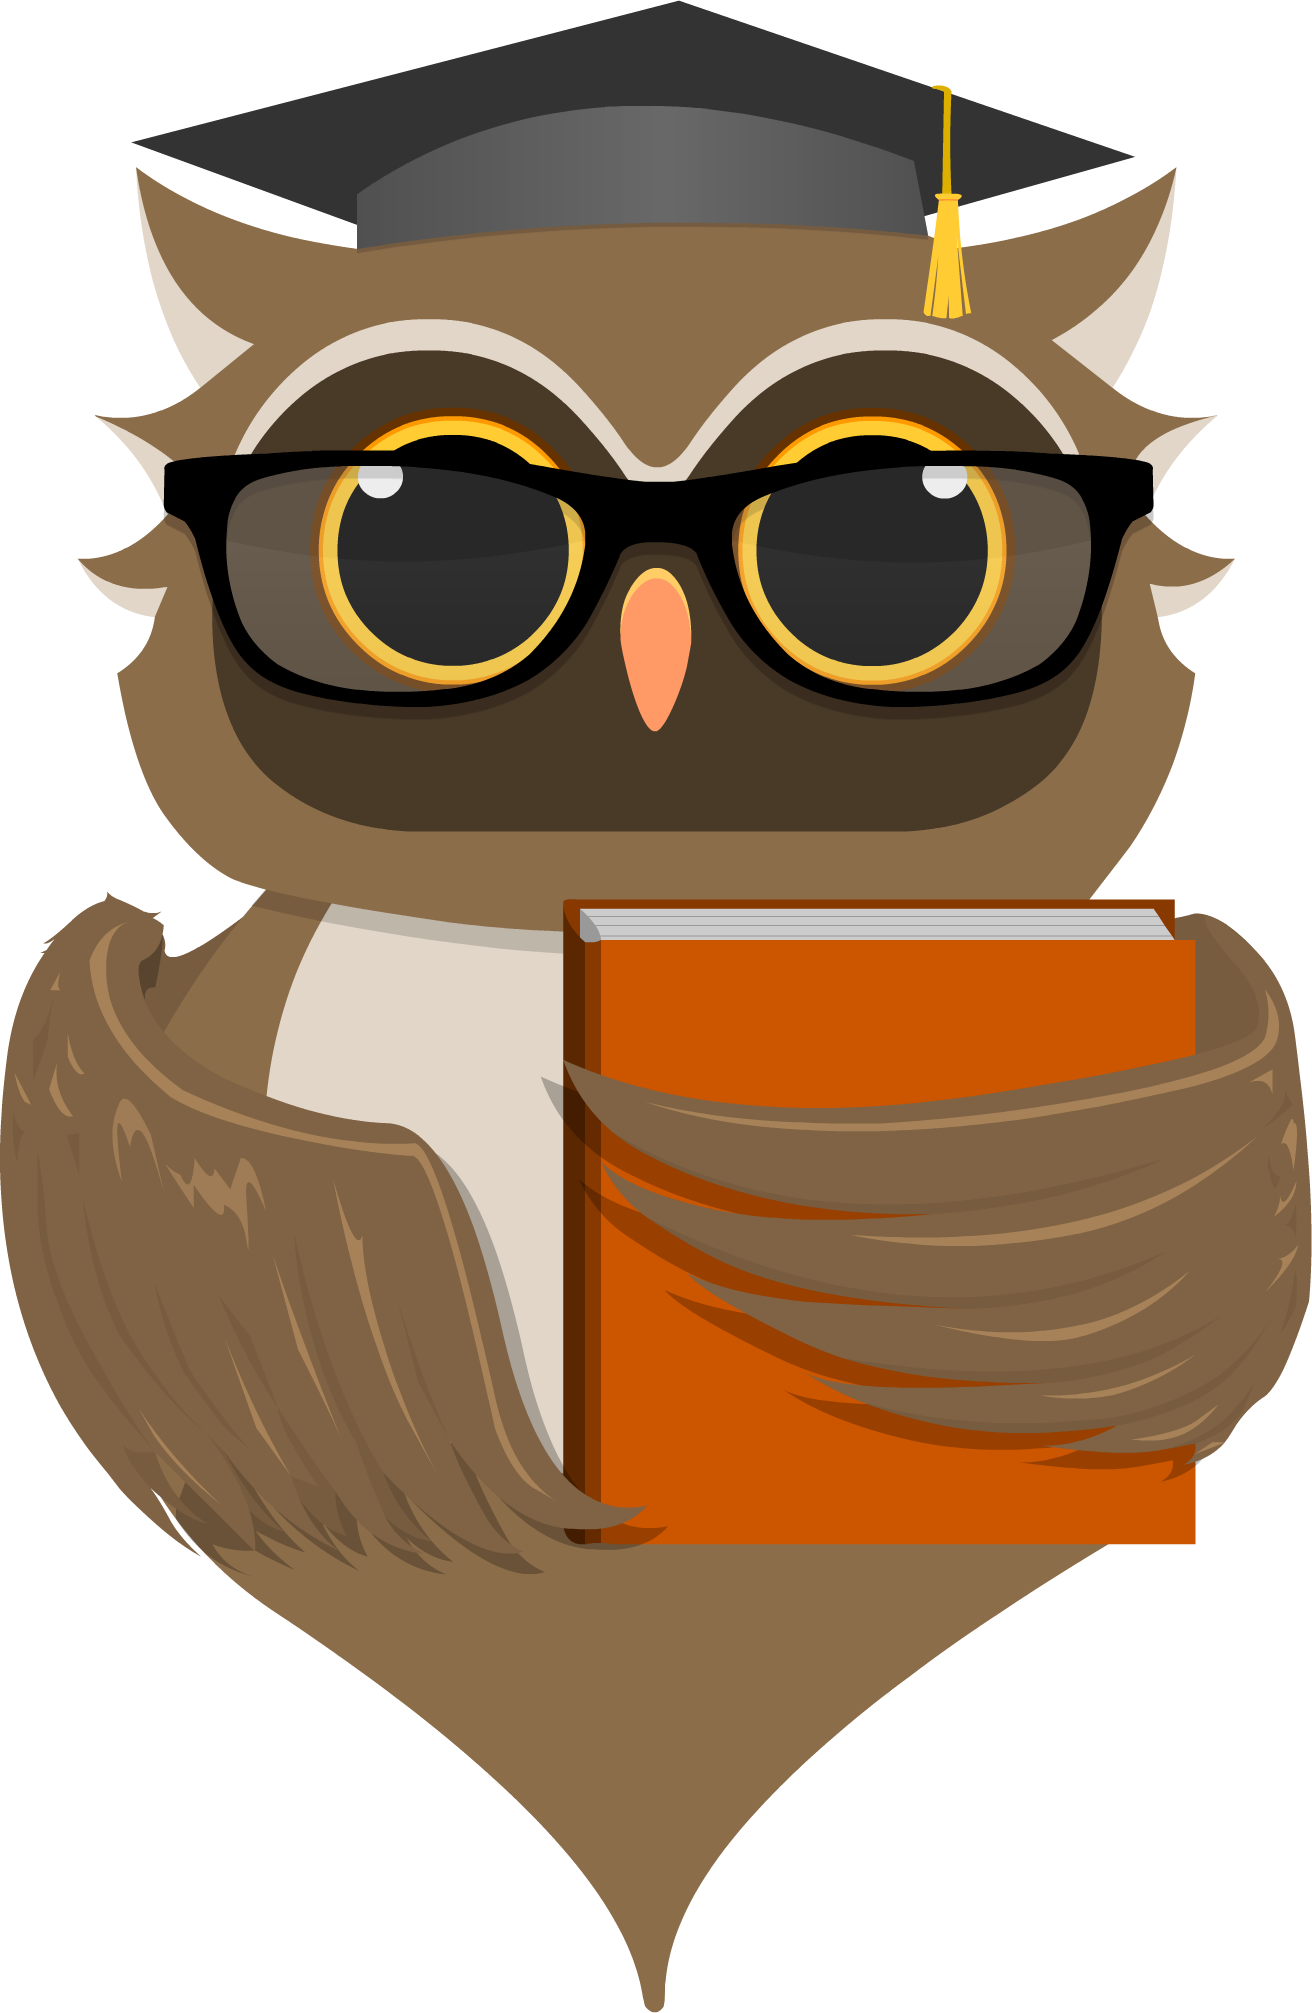 Wise owl png. Transparent images pluspng eduwise